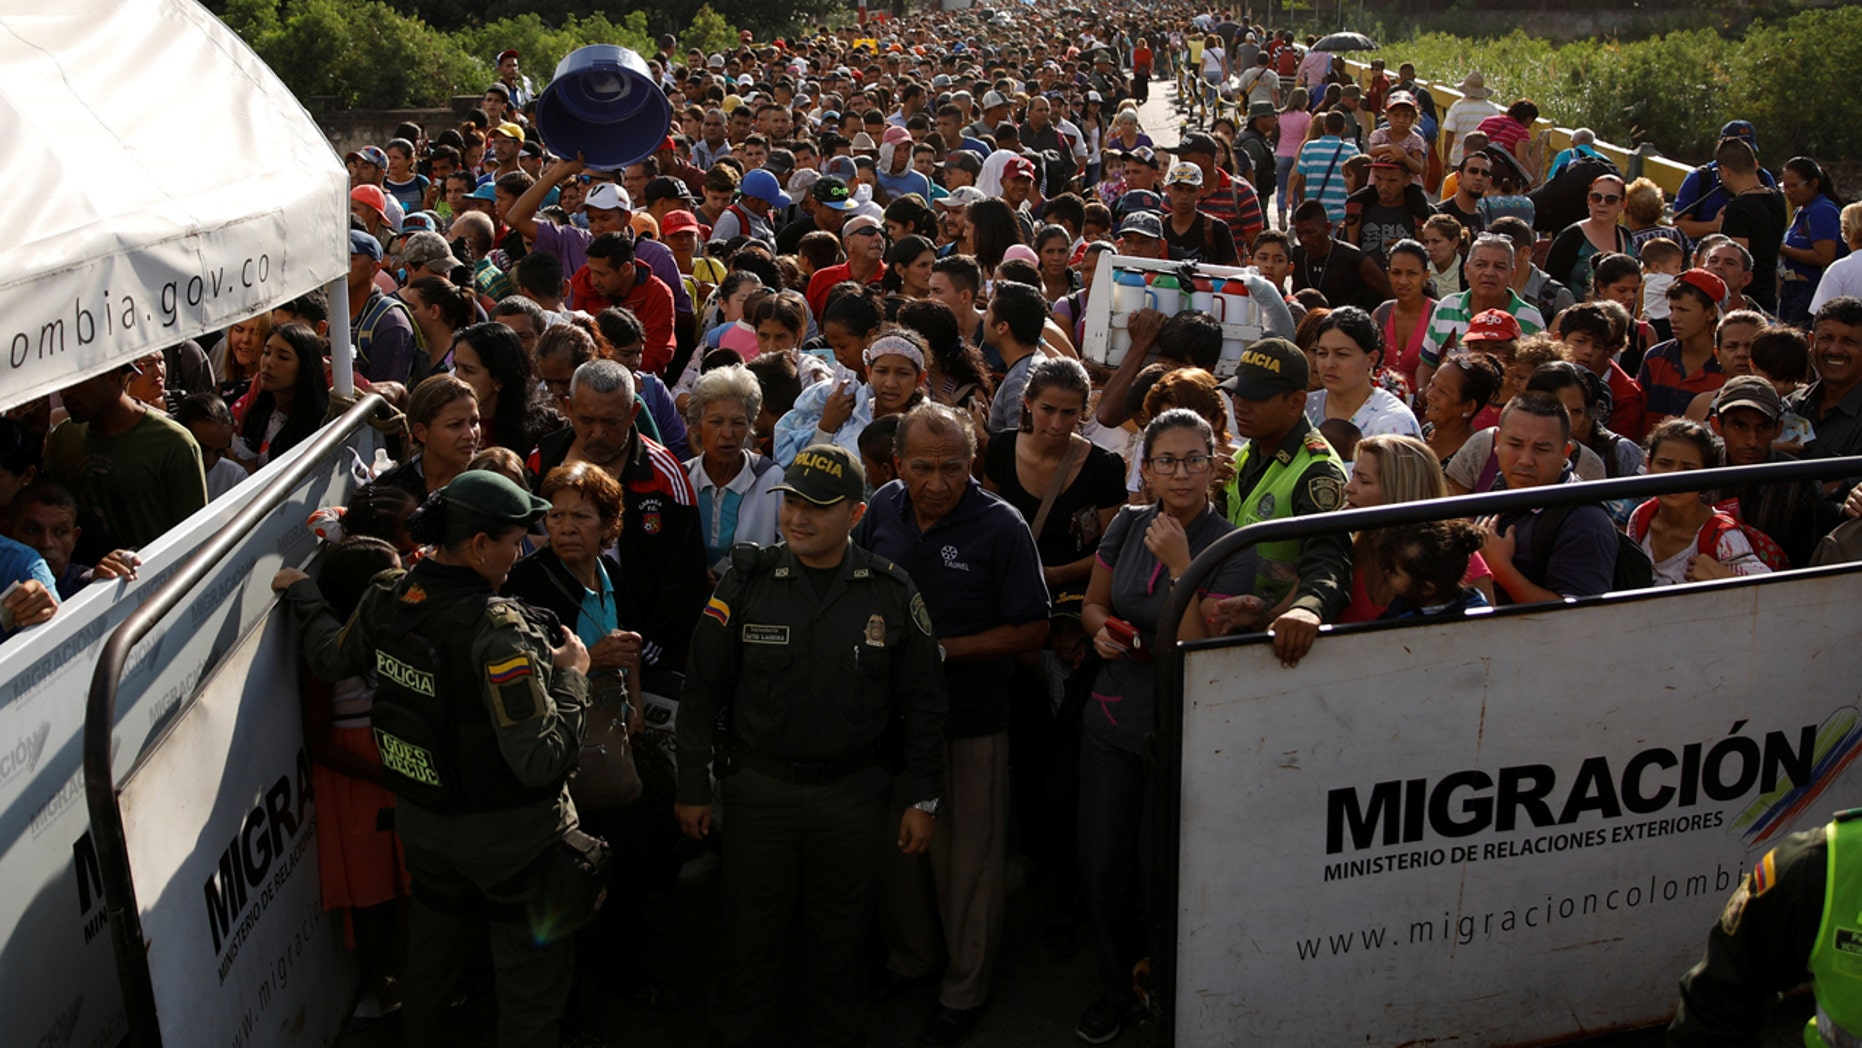 Colombian police officers stand in front of people assembling to try to cross into Colombia from Venezuela last month via Simón Bolívar International Bridge in Cúcuta, Colombia.